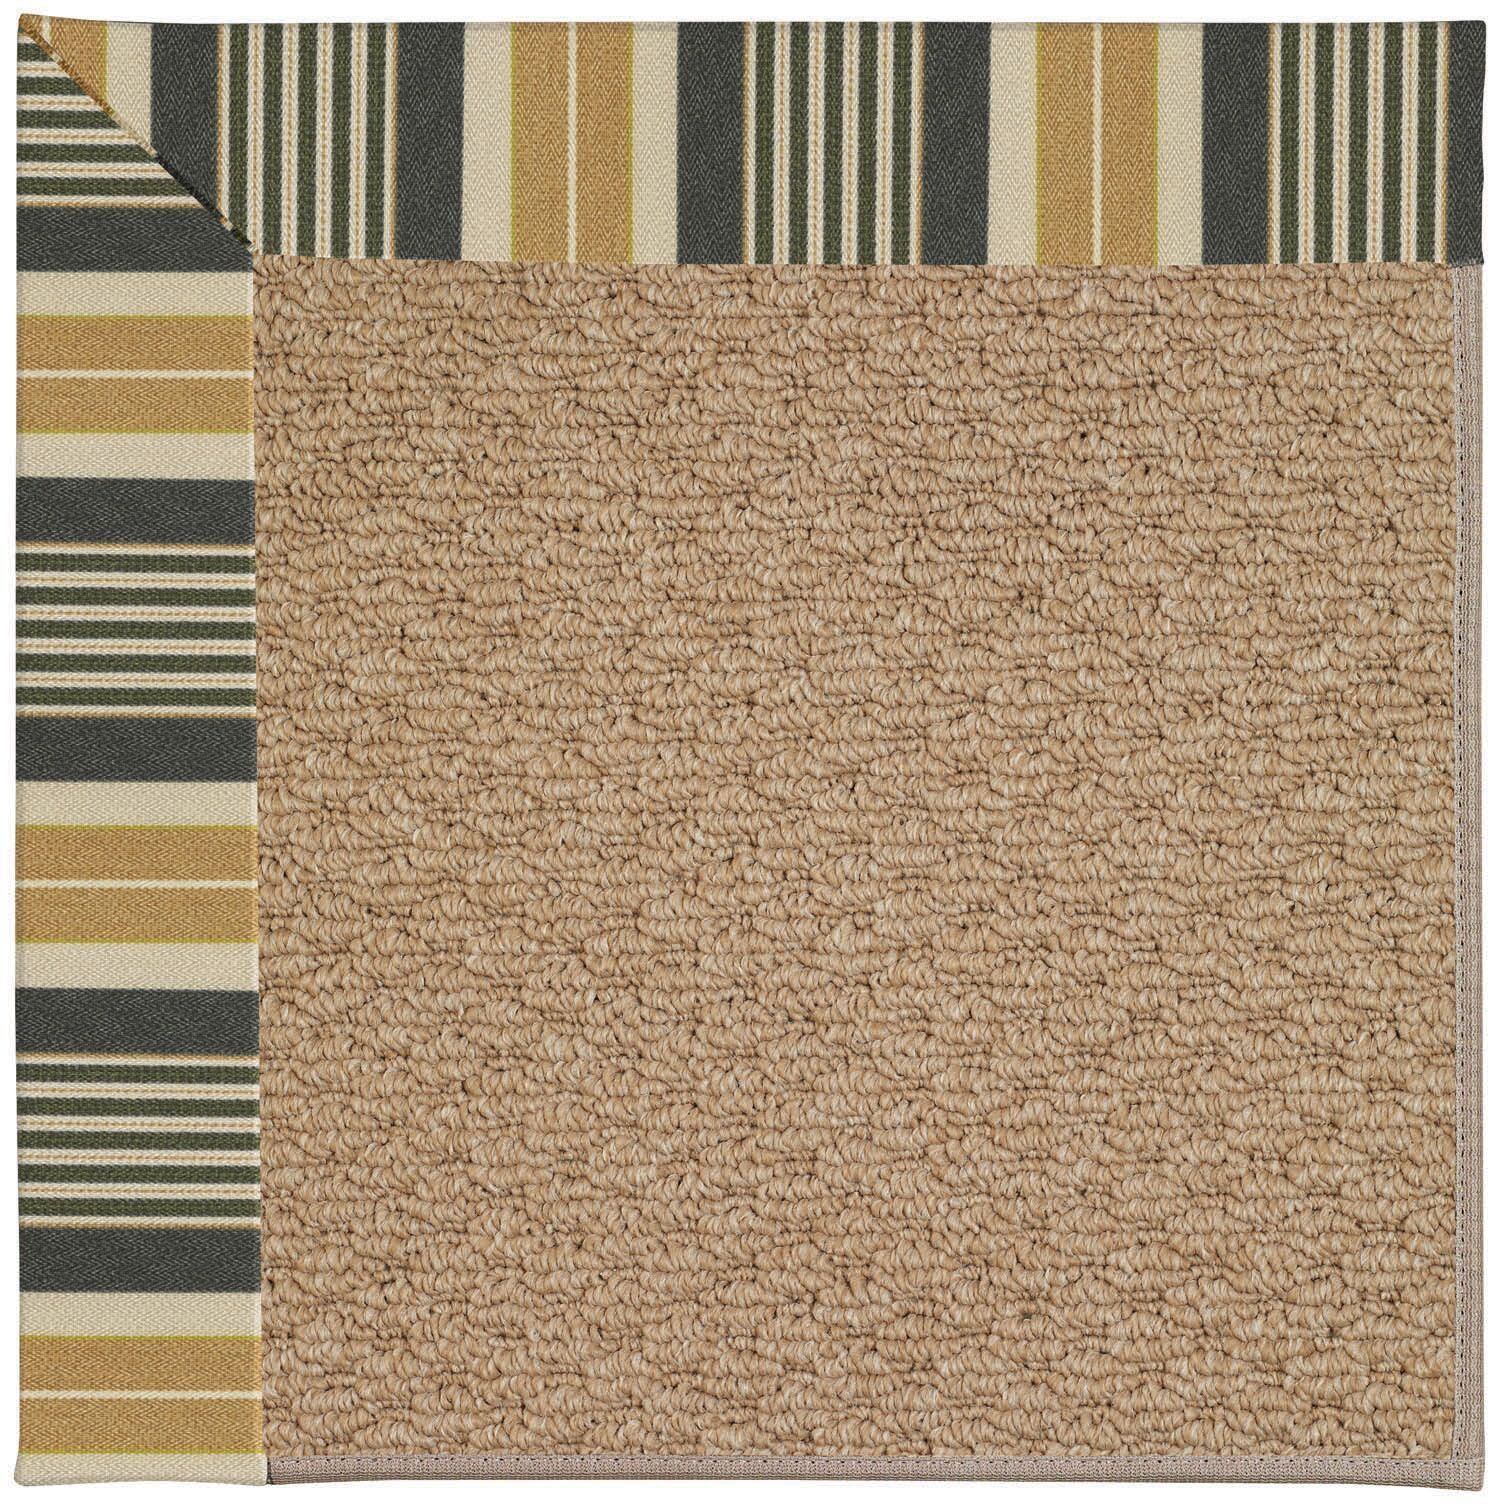 Lisle Machine Tufted Multi-colored Indoor/Outdoor Area Rug Rug Size: Square 6'